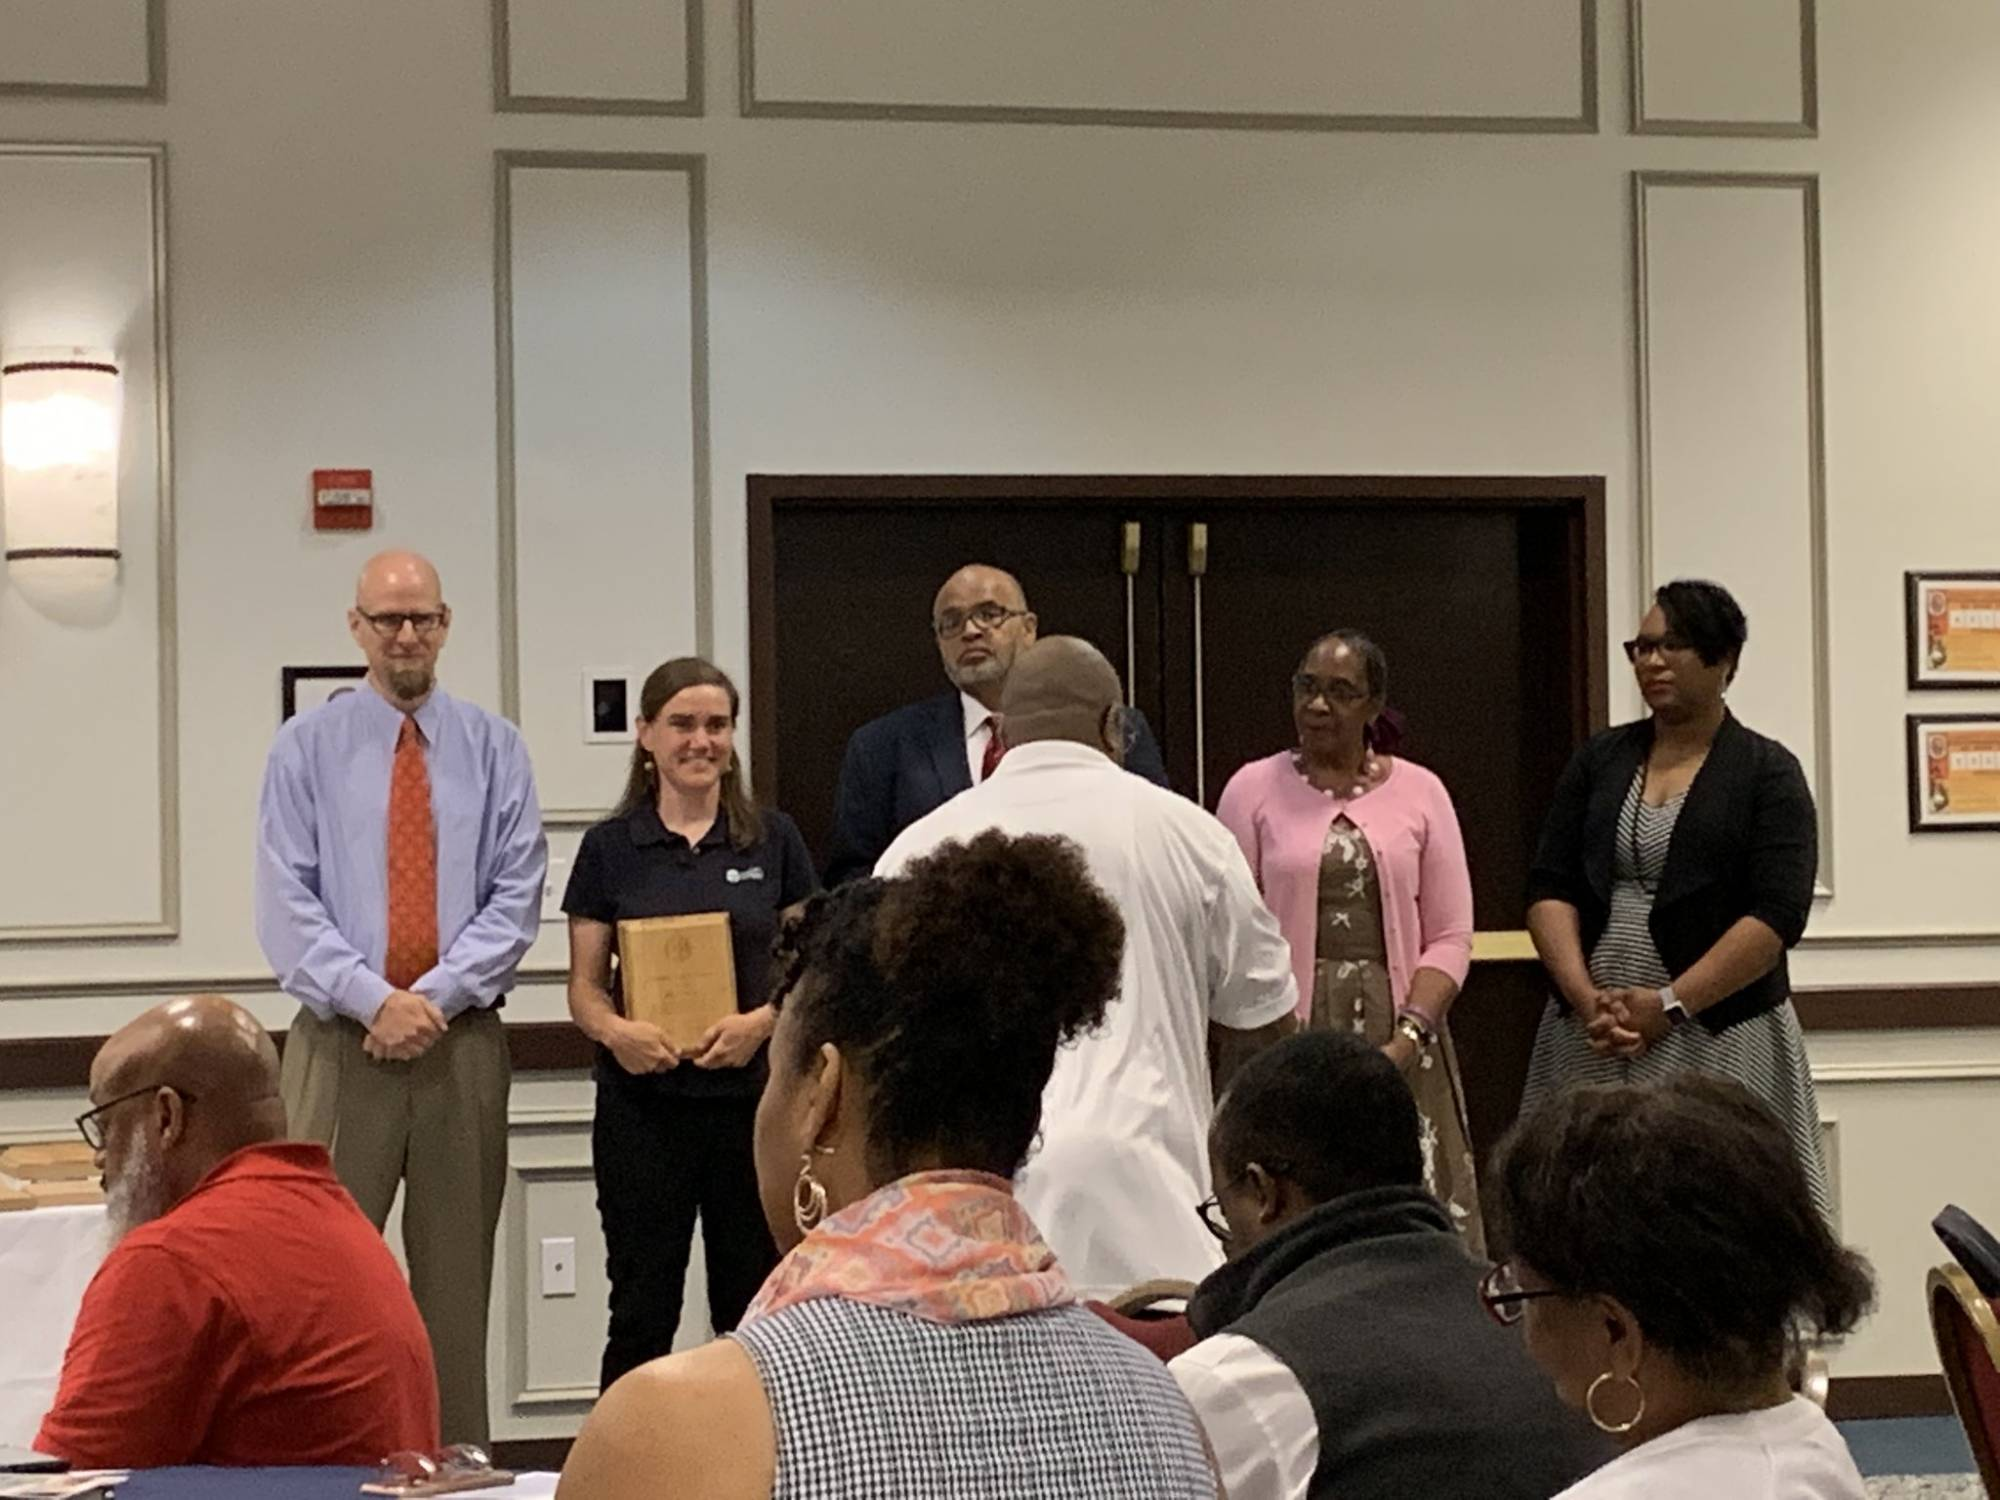 AWS's Director of River Restoration Wins Award from Prince George's County Schools